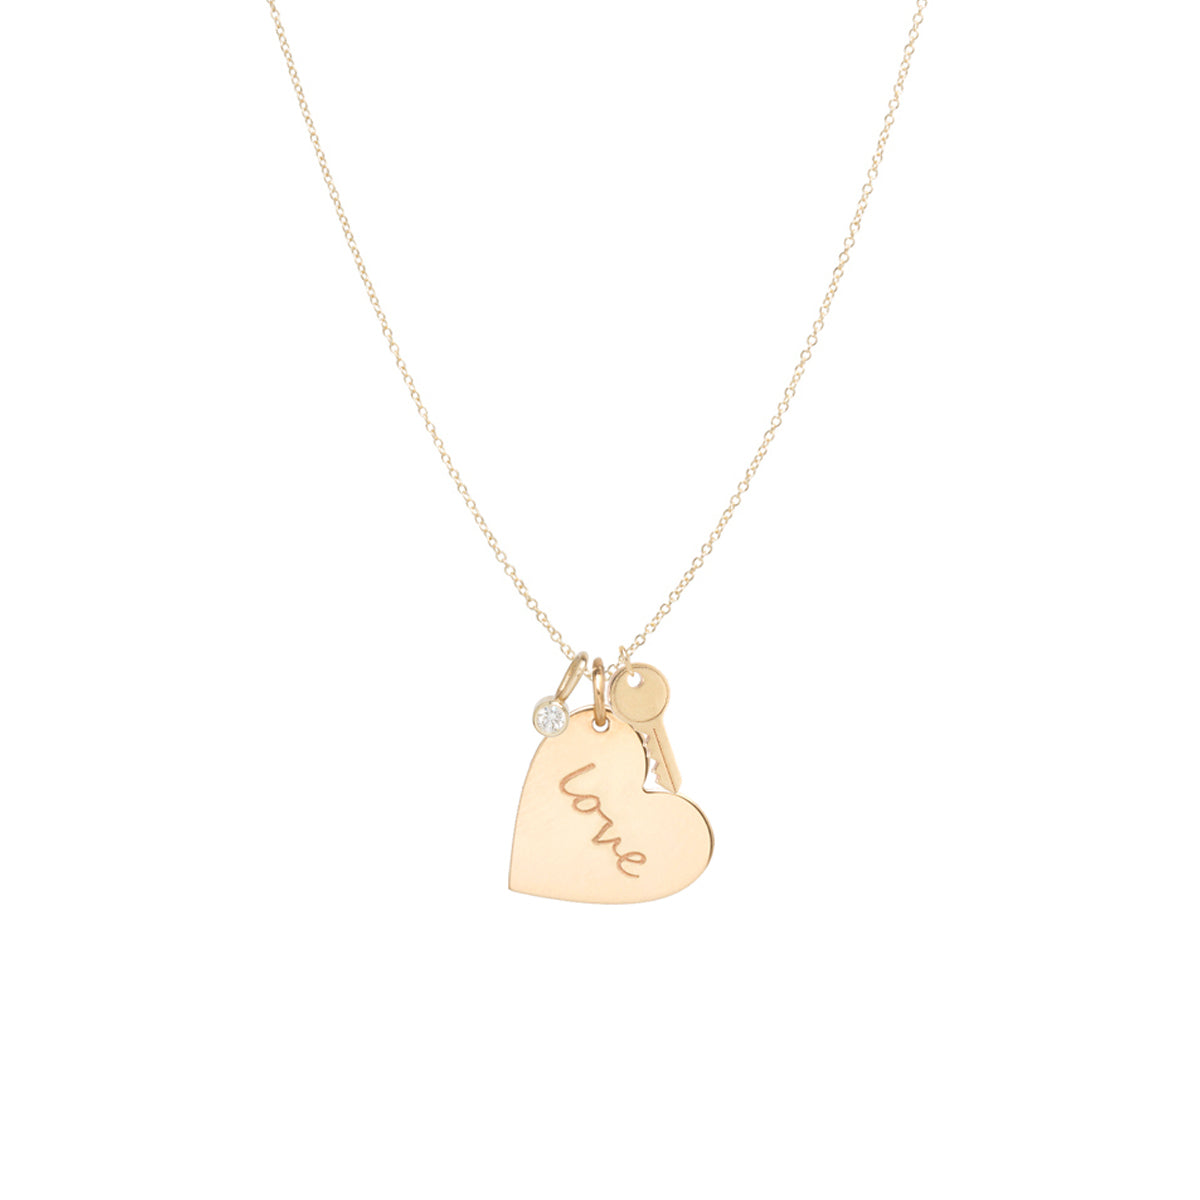 14k gold love heart charm necklace with key and diamond